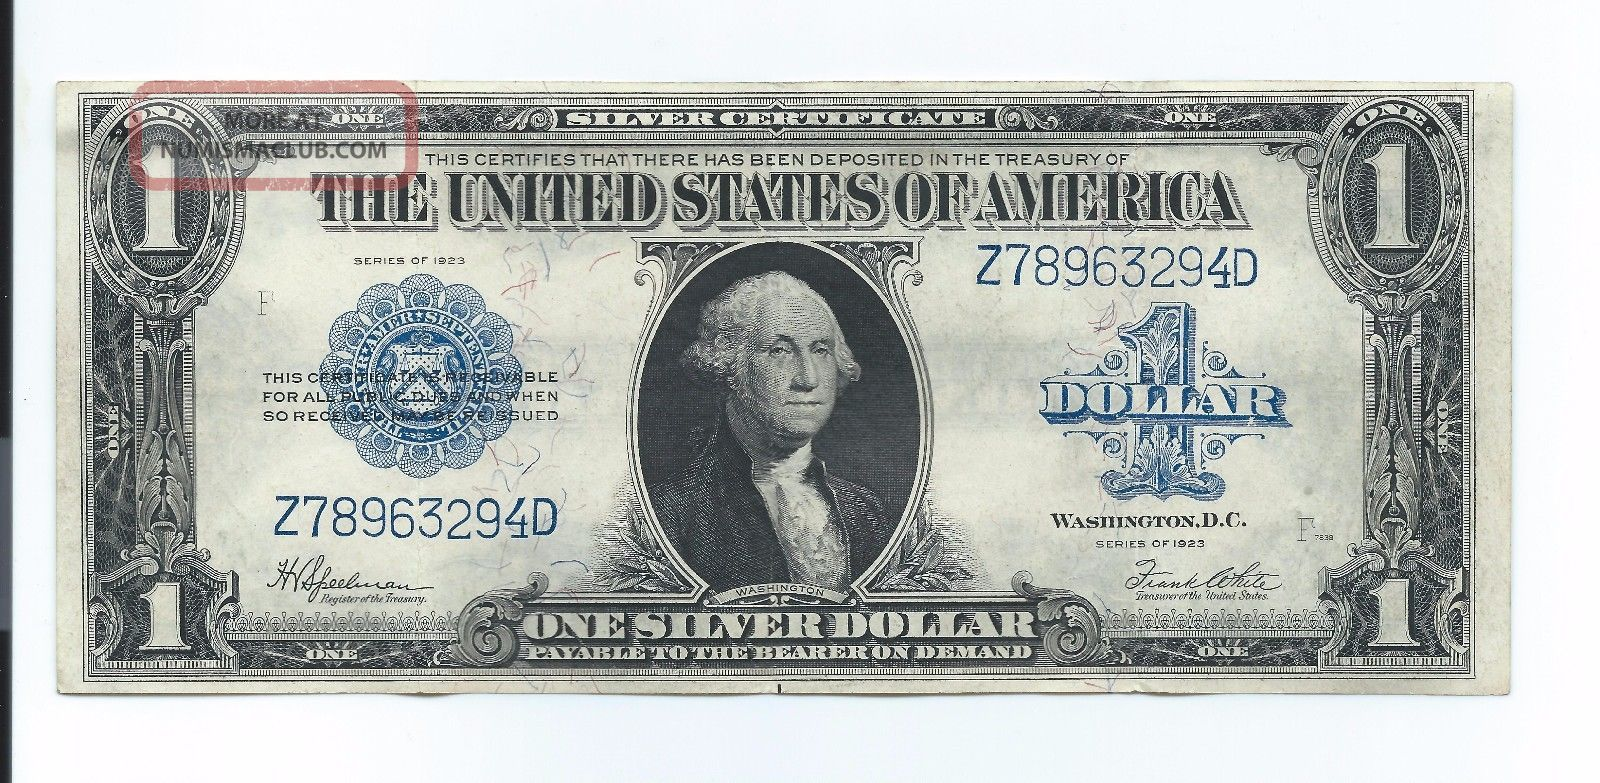 Series 1923 $1 One Dollar Silver Certificate Large Size Note Very Large Size Notes photo